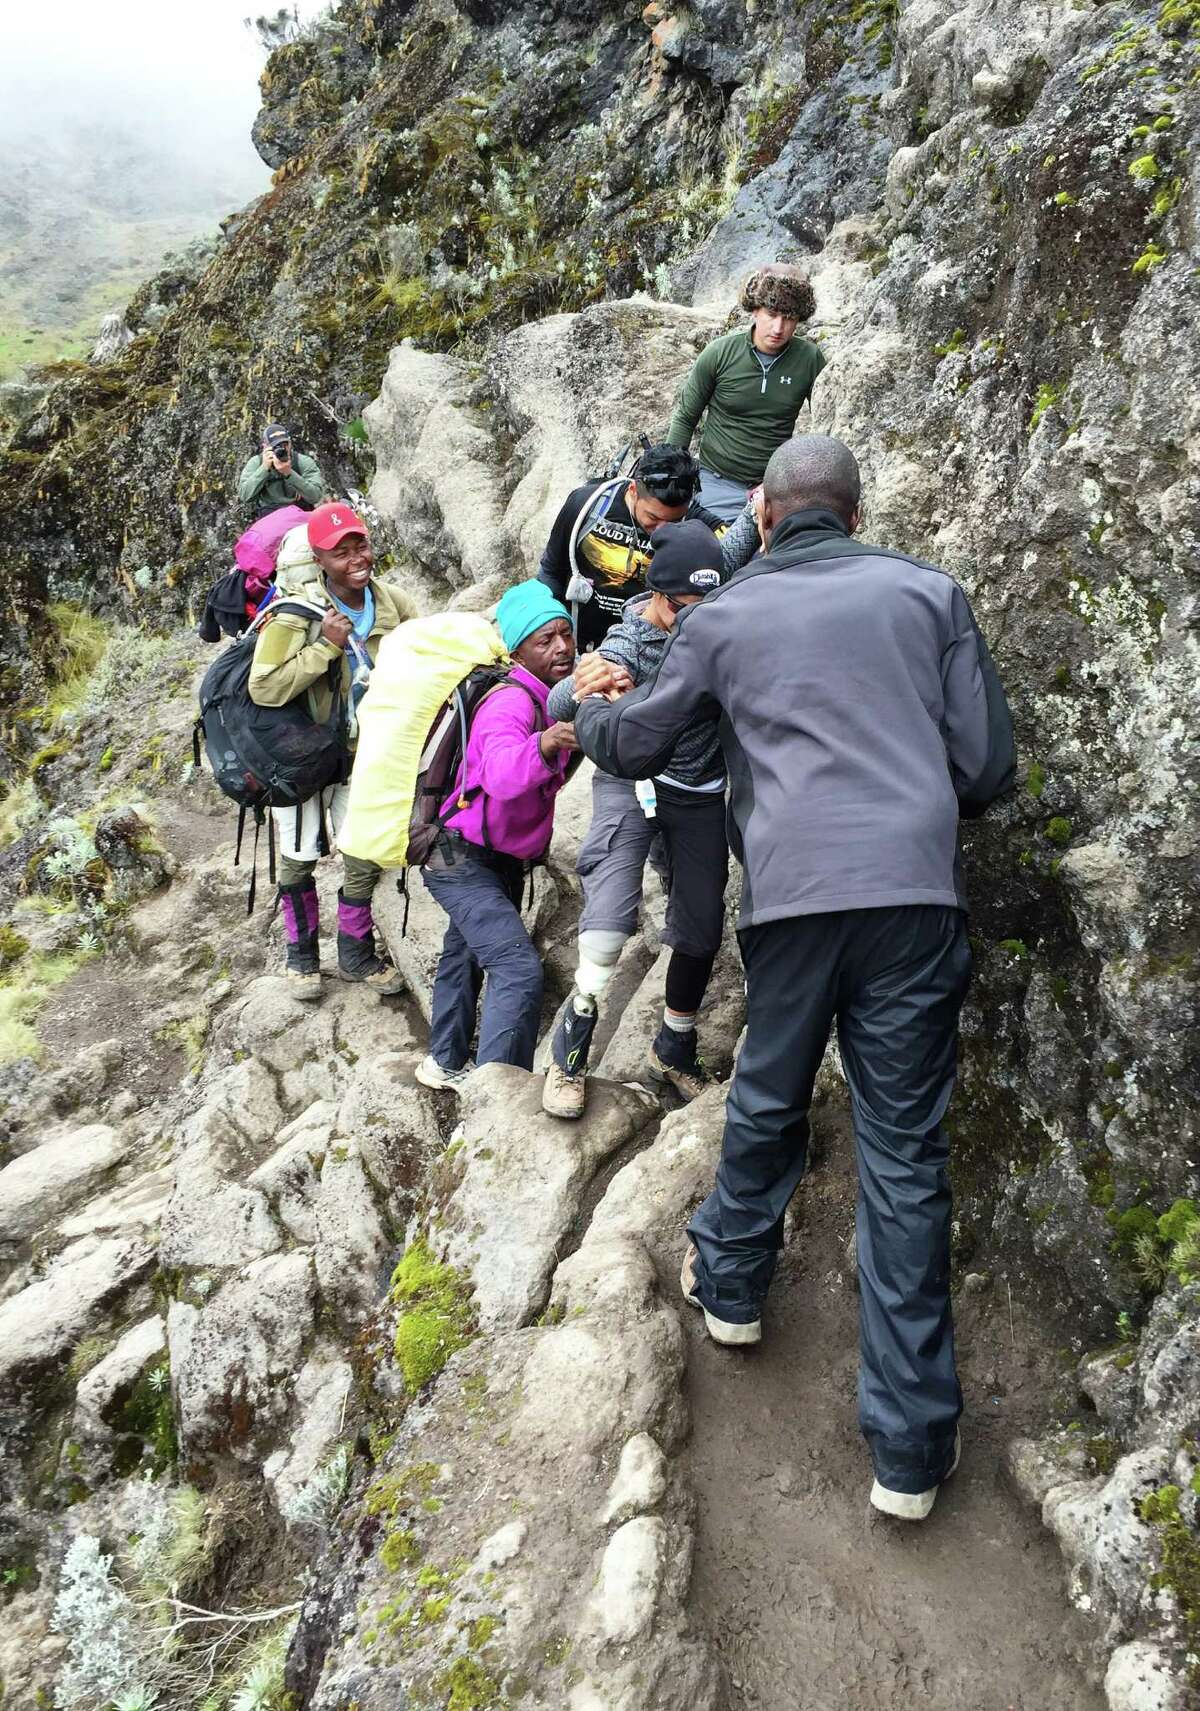 Porters and members of the Cloud Walkers assist one another as they tackle the narrow path of Barranco Wall, one of the most notable challenges of climbing Mt. Kilimanjaro.